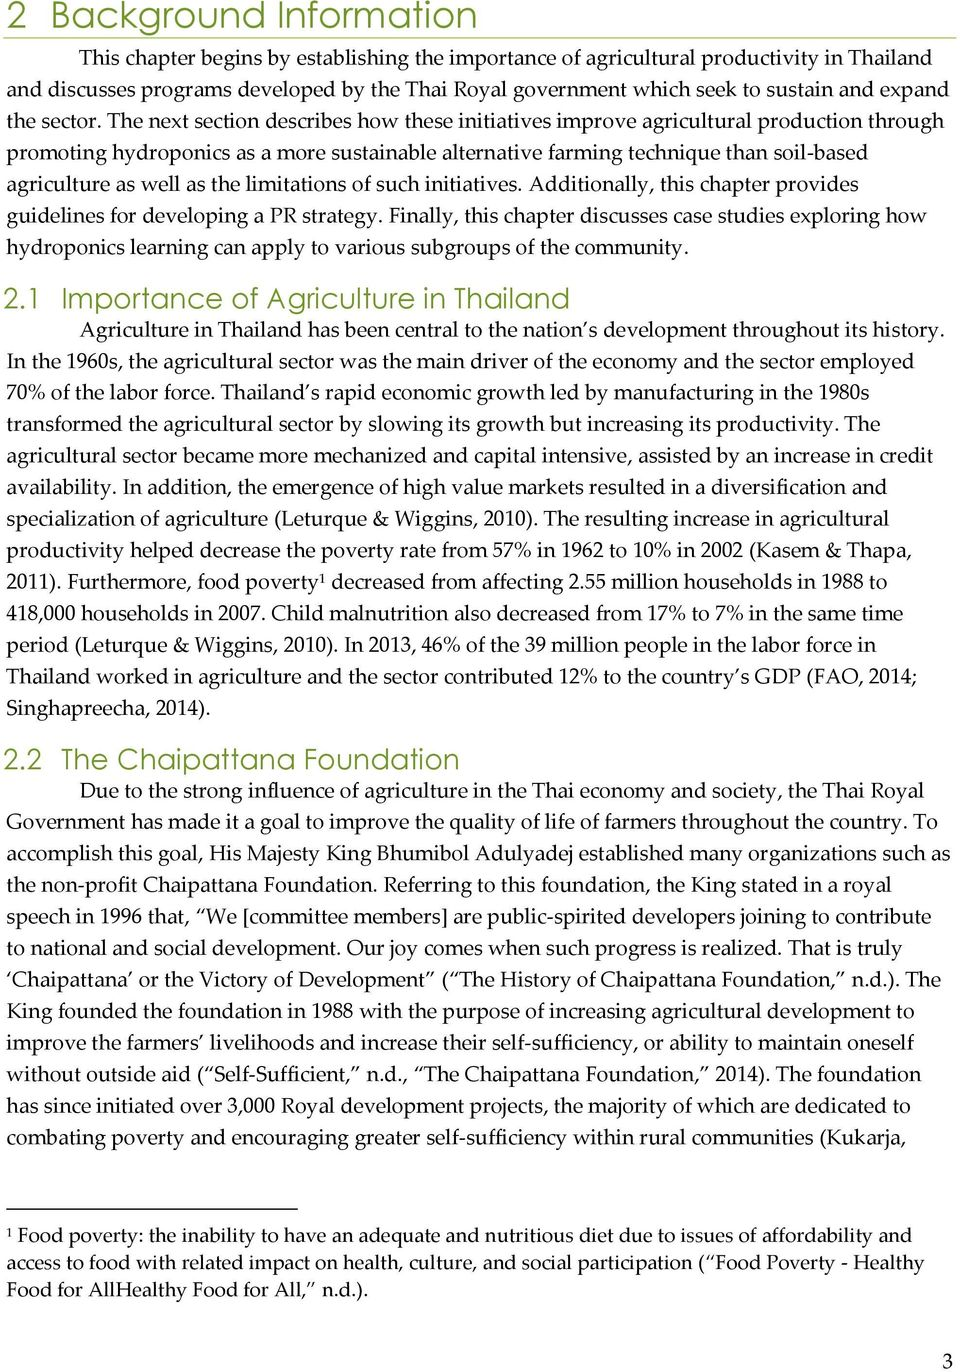 The next section describes how these initiatives improve agricultural production through promoting hydroponics as a more sustainable alternative farming technique than soil-based agriculture as well